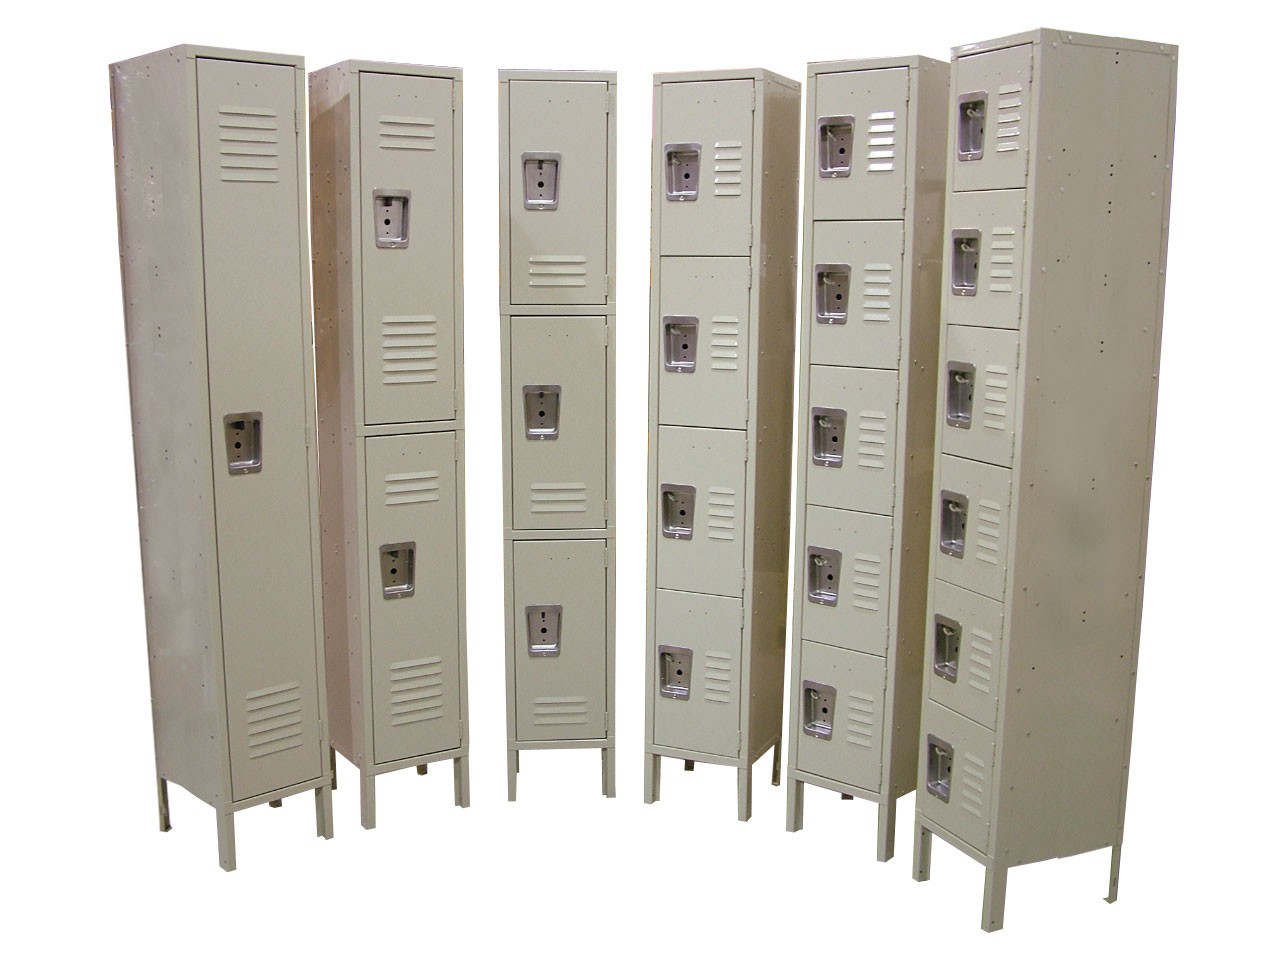 Omcan (FMA) LKT318 3-Tier Locker